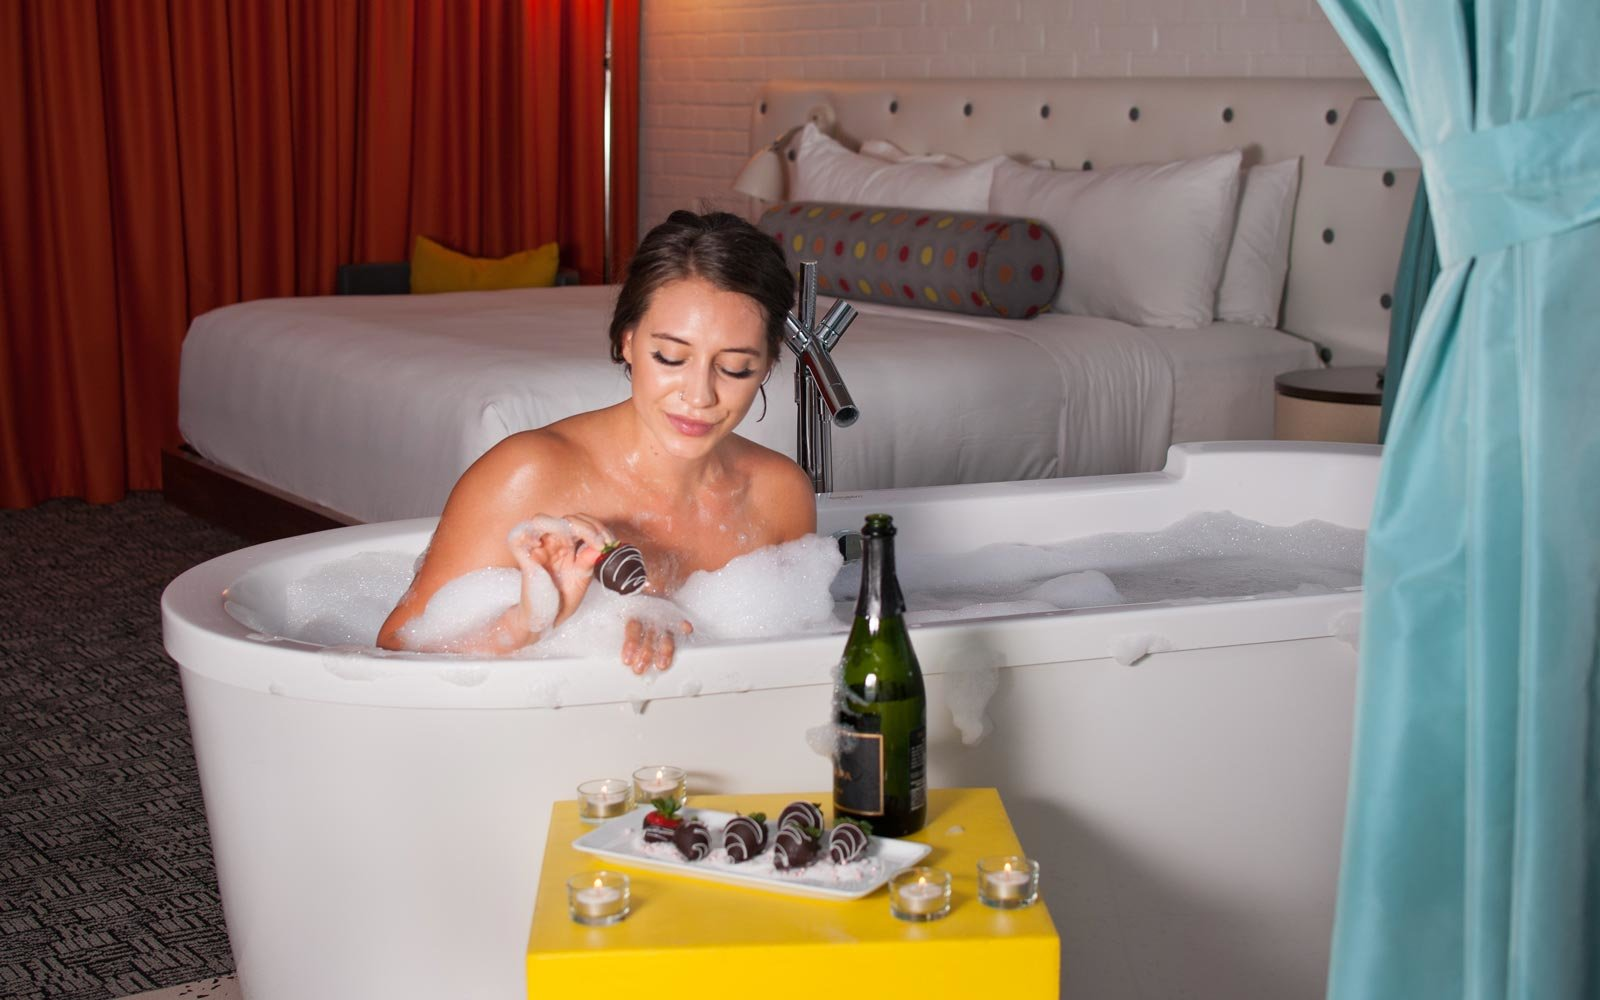 Bath butler experience at the Hotel Valley Ho